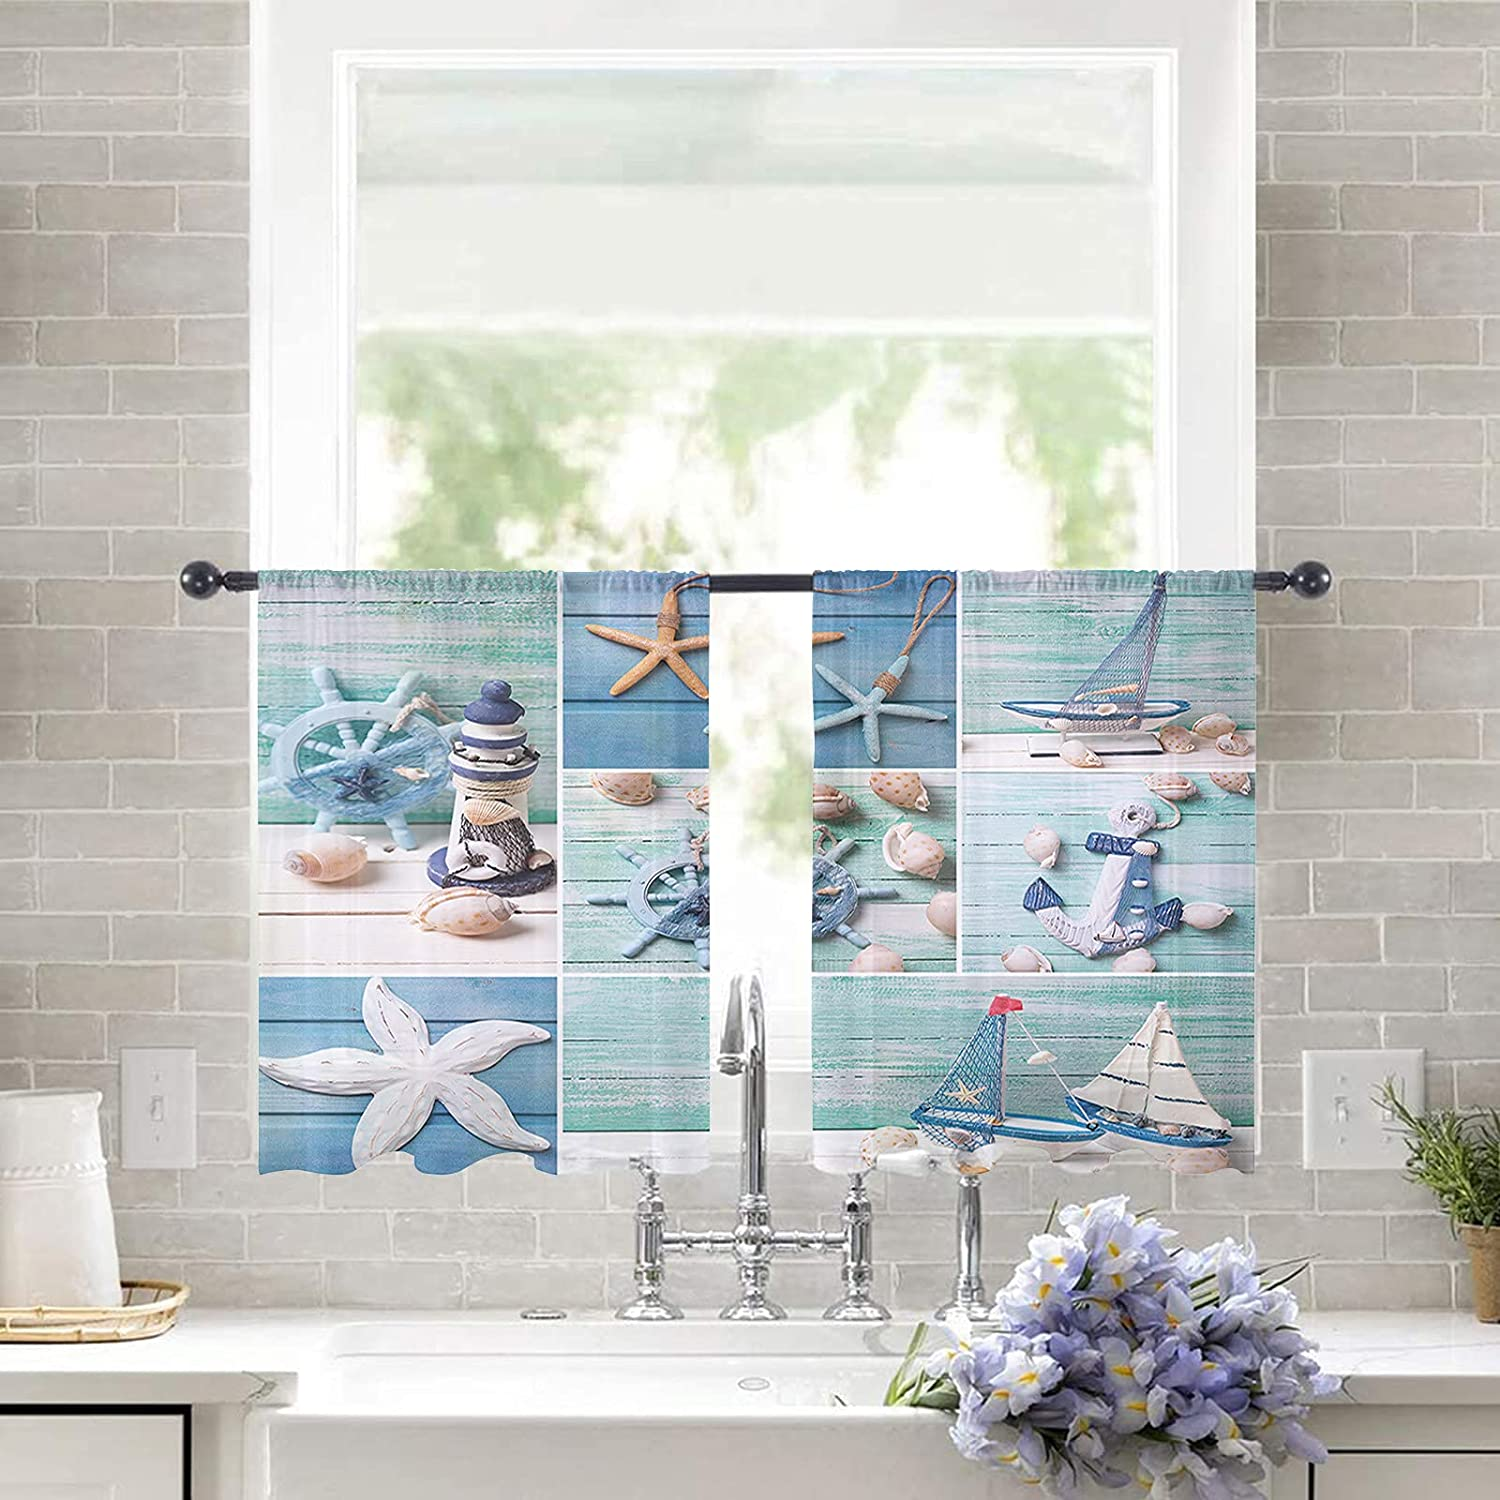 Semi Sheer Curtains for Living Room Wood Starfish Super Special Free Shipping Cheap Bargain Gift SALE held Gr Decor Blue